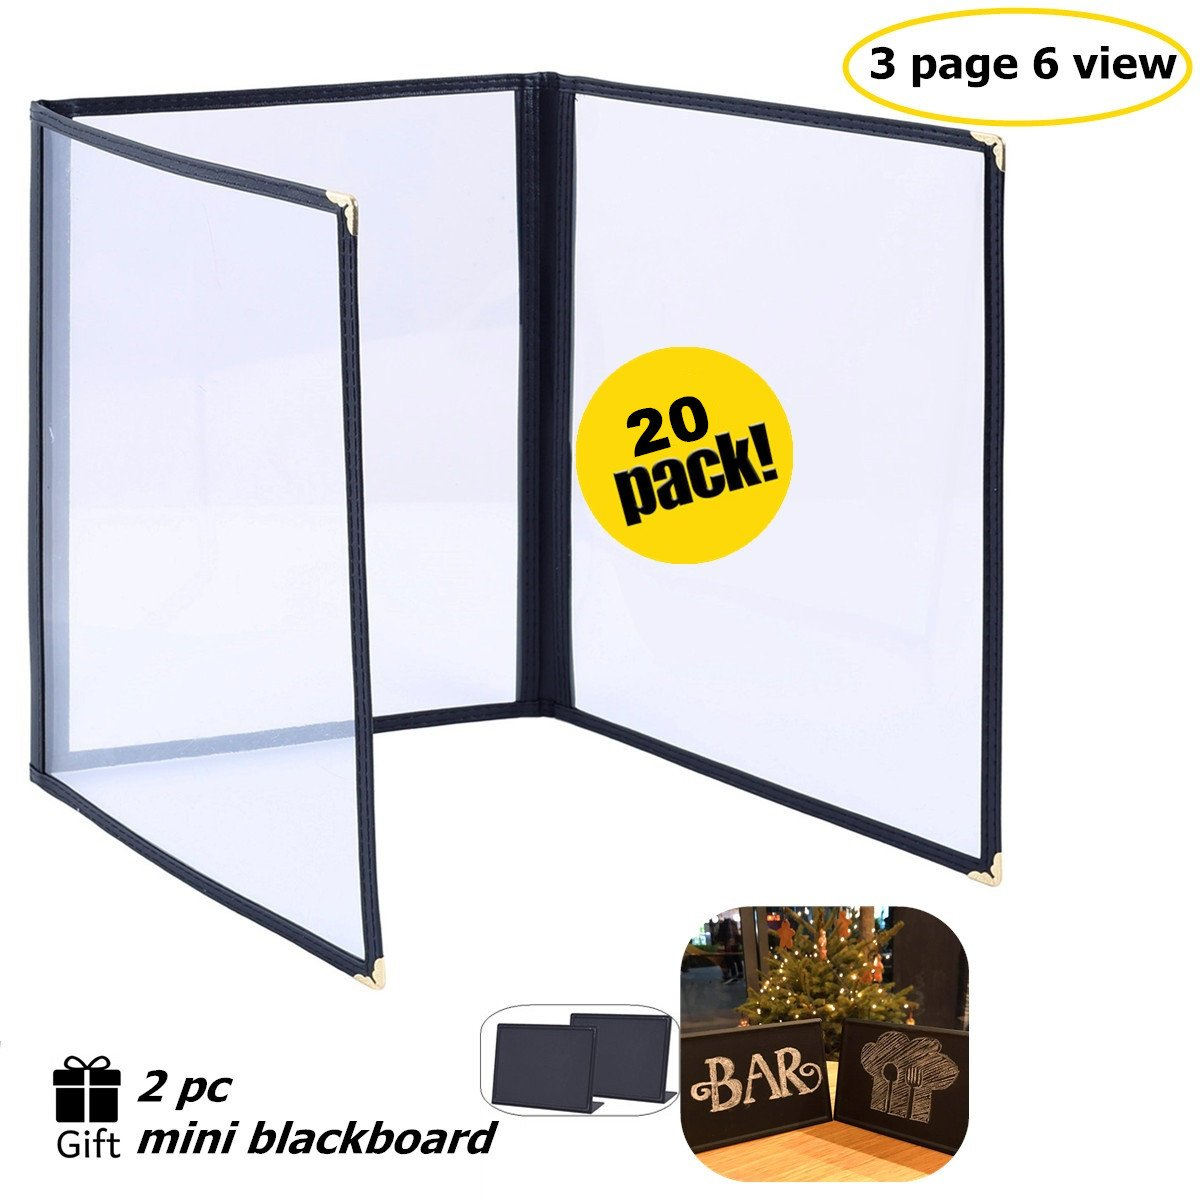 See More Interior Album-Style Corners Type MenuCoverMan in  Search. Waterfall Edge 6-View Case of 5 Cascade Casebound Menu Covers #8073 Black Quad Panel 8.5 Wide x 11 Tall